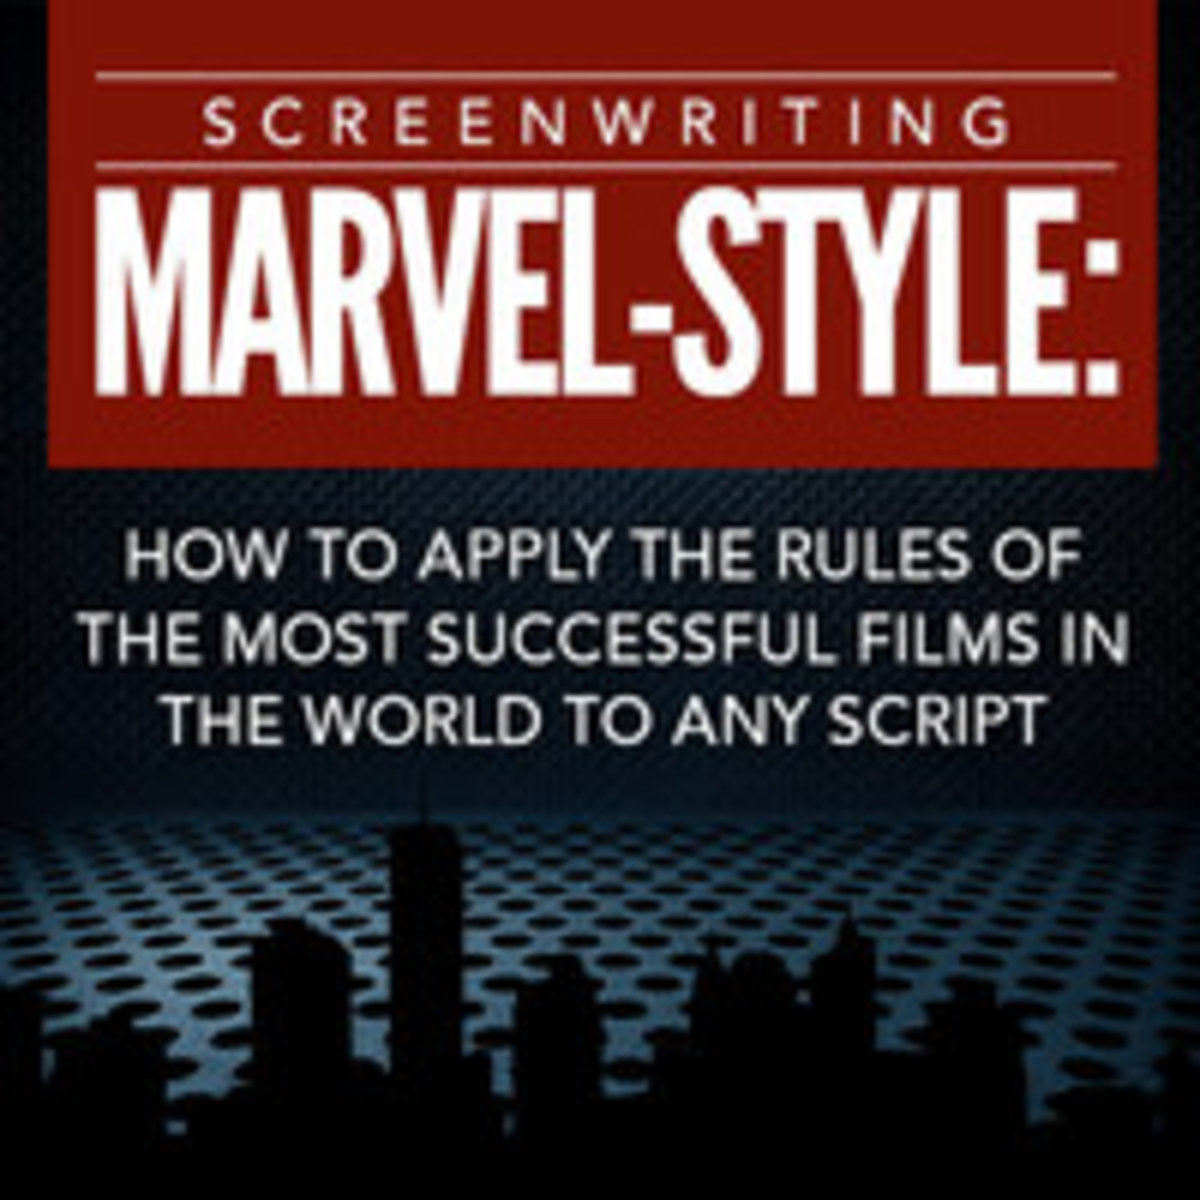 Screenwriting Marvel-Style: How to Apply the Rules of the Most SuccessfulFilms in the World to Any Script